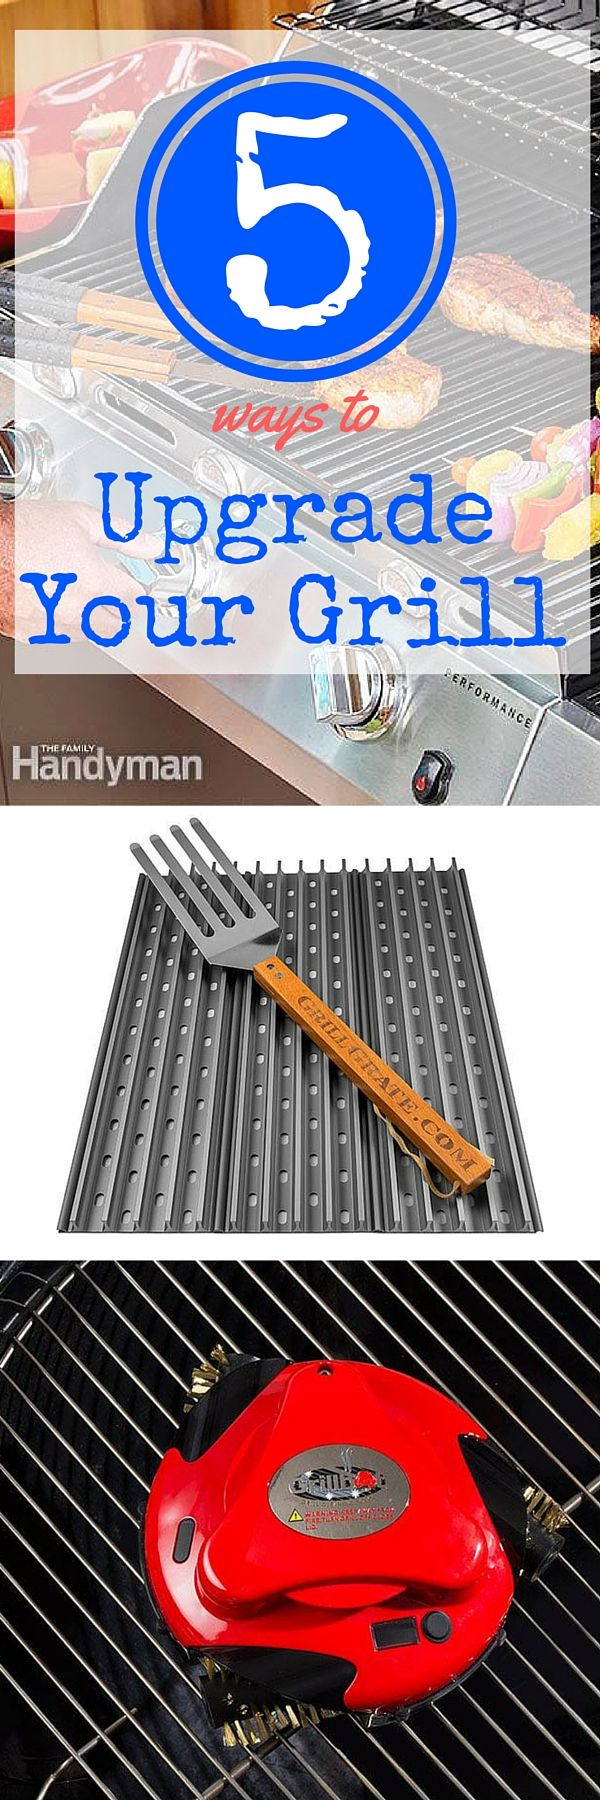 Upgrade Your Grill: BBQ Tools